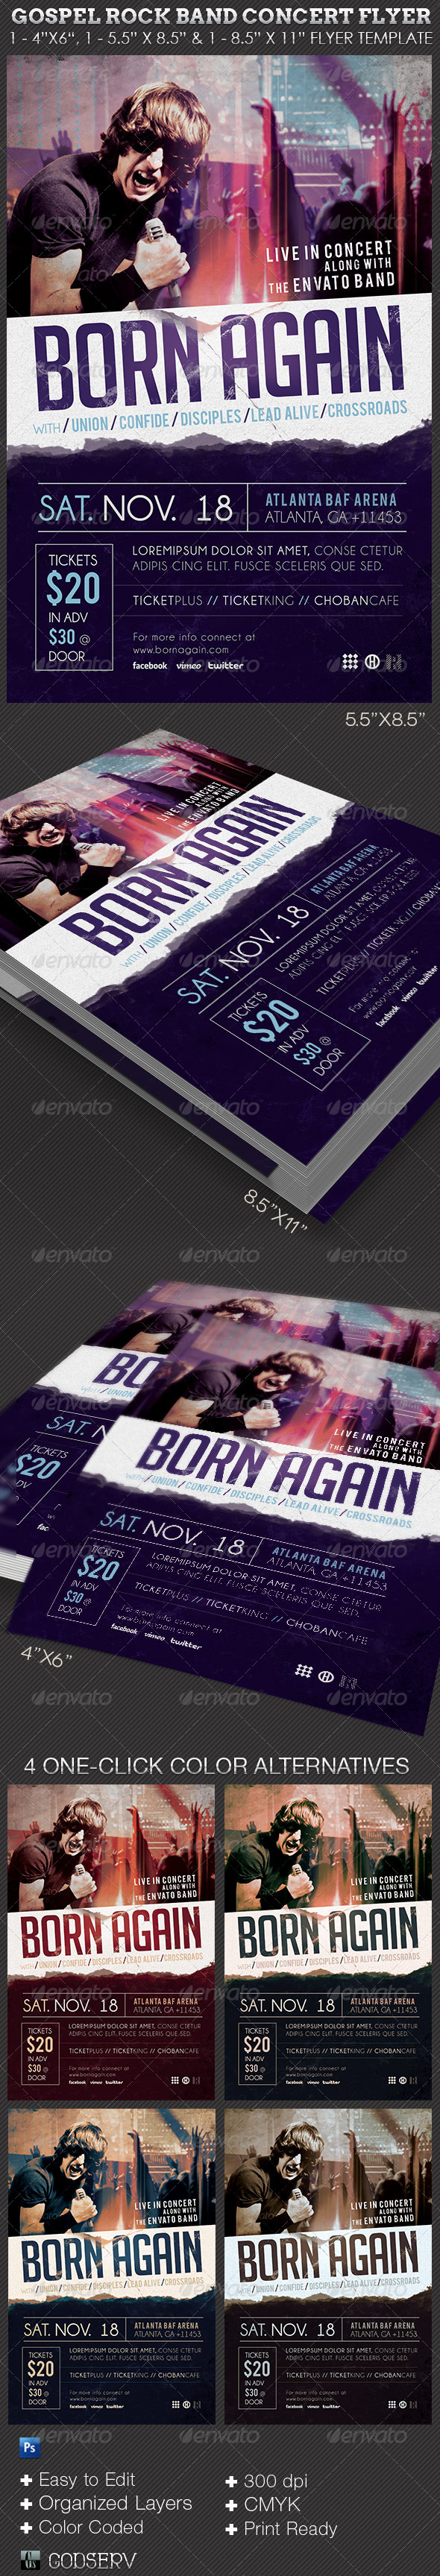 GraphicRiver Gospel Rock Band Concert Flyer Template 6962064